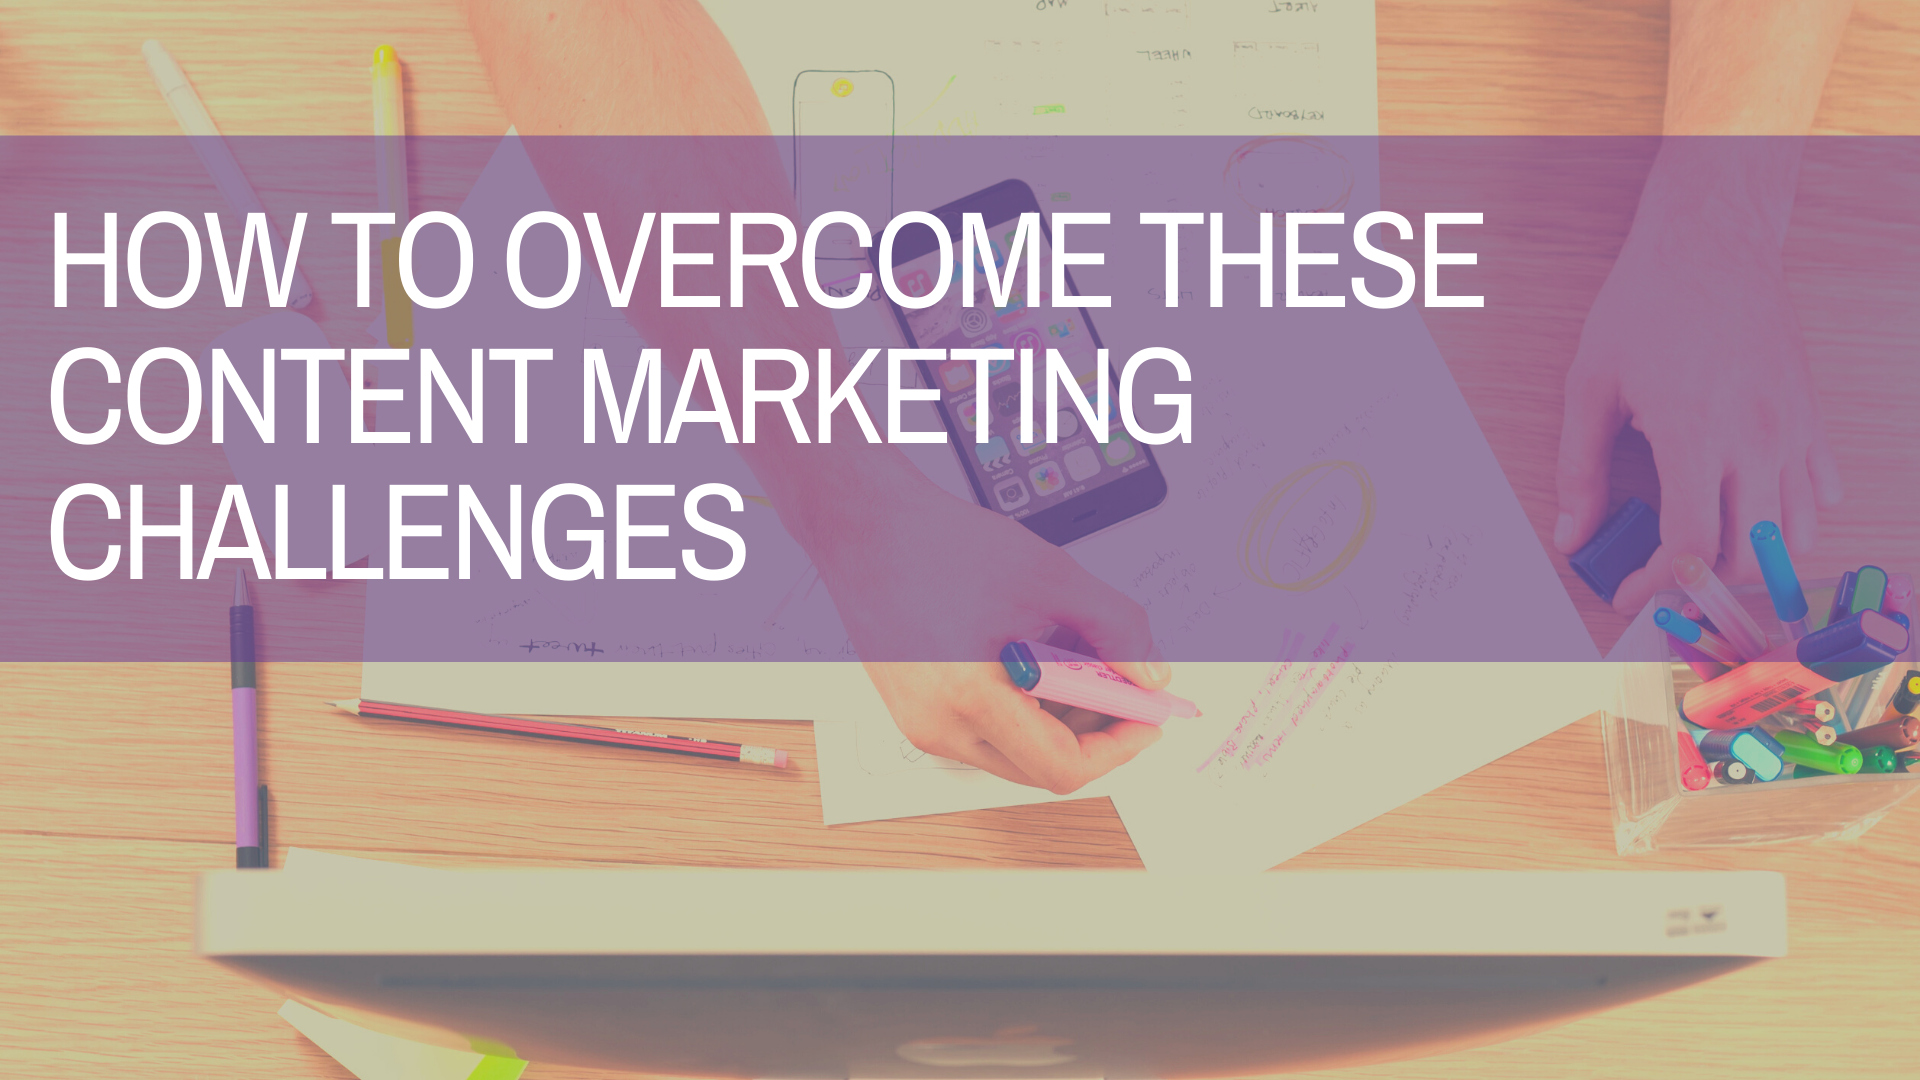 overcoming content marketing challenges by amplihigher copywriting agency